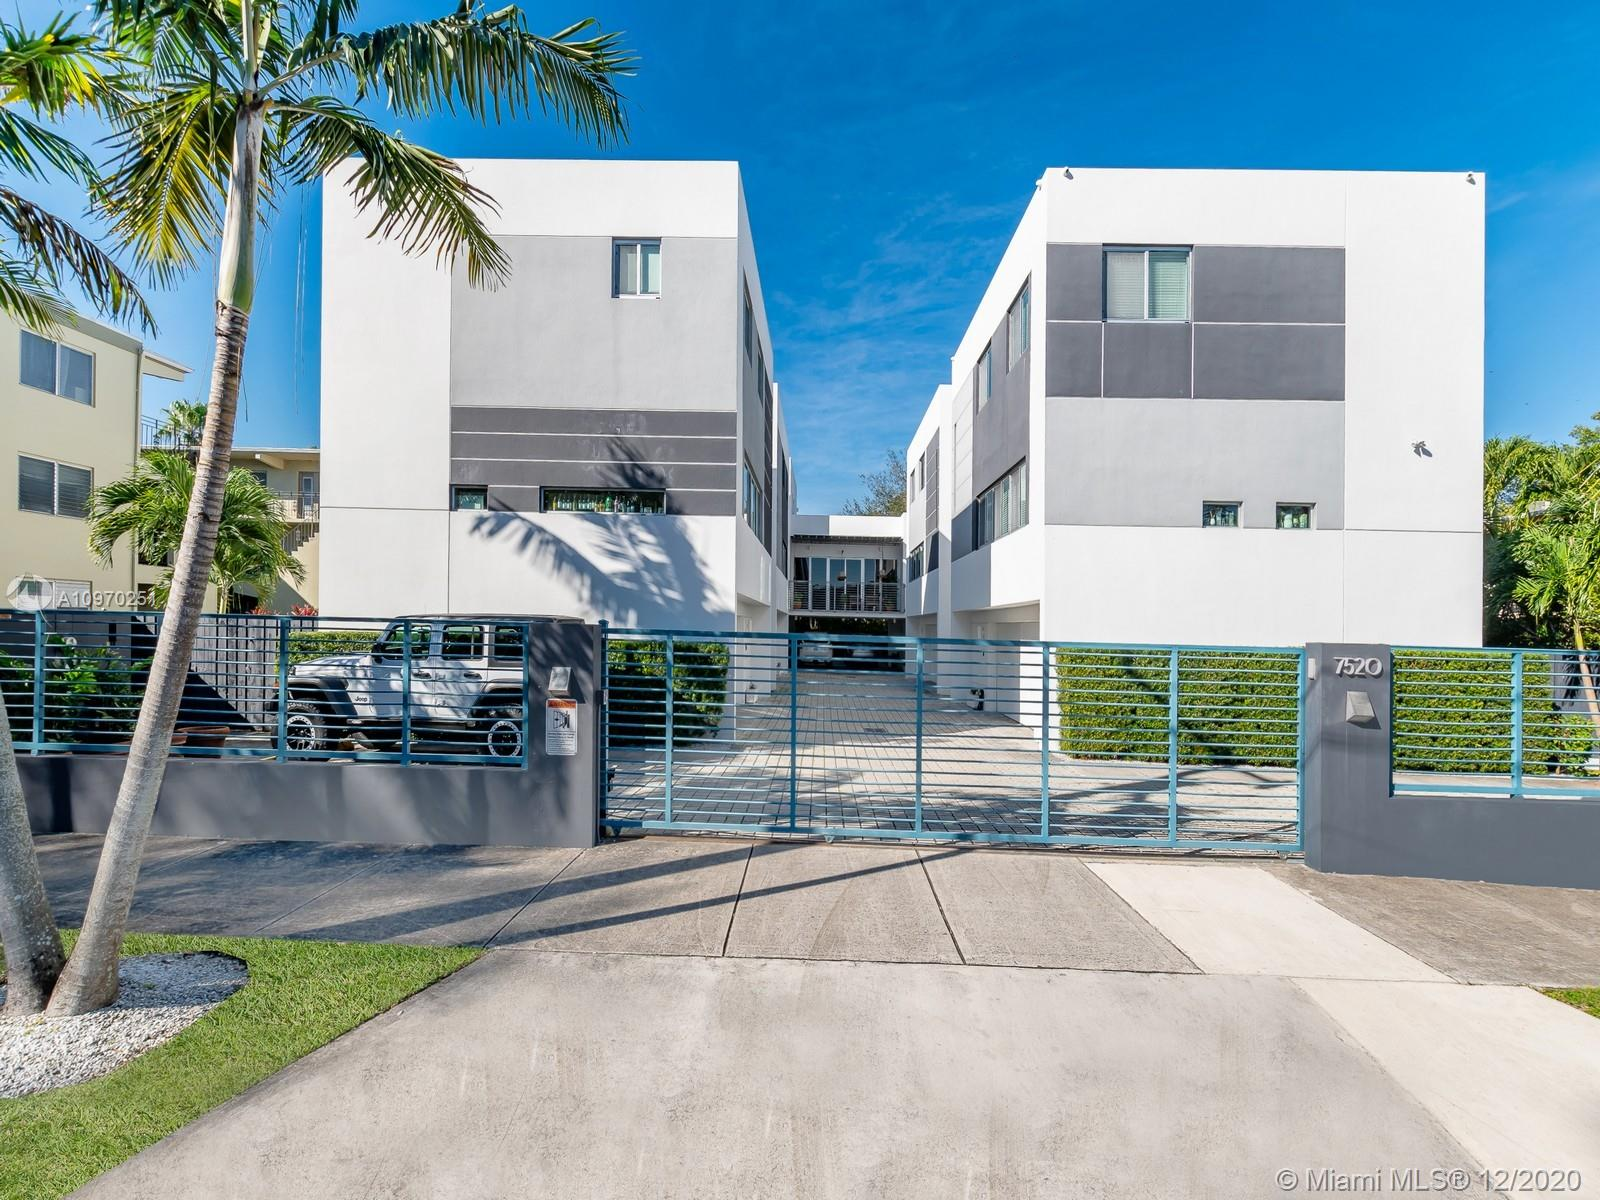 ONE OF A KIND 3 STORY TOWNHOUSE IN SOUTH MIAMI .  4 BEDROOMS 4 BATHS IN THE MAIN HOUSE WITH A 1/1 SEPERATE STUDIO WITH PRIVATE TERRACE, KITCHEN AND ENTRANCE.  MODERN FINISHES THROUGHOUT INCLUDING WOOD AND MARBLE FLOORS, GRANITE COUNTERTOPS, CORAL STONE TERRACES, HIGH IMPACT WINDOWS AND DOORS, UPDATED BATHROOMS AND MORE.  2 CAR GARAGE WITH UP TO 4 COVERED PARKING SPACES ALLOWING YOU TO PARK 6 CARS!  GREAT OUTDOOR ENTERTAINING AREA FOR PRIVATE GATHERINGS.  ONLY 6 UNITS IN THE BUILDING (VERY QUIET AND PRIVATE BUILDING)